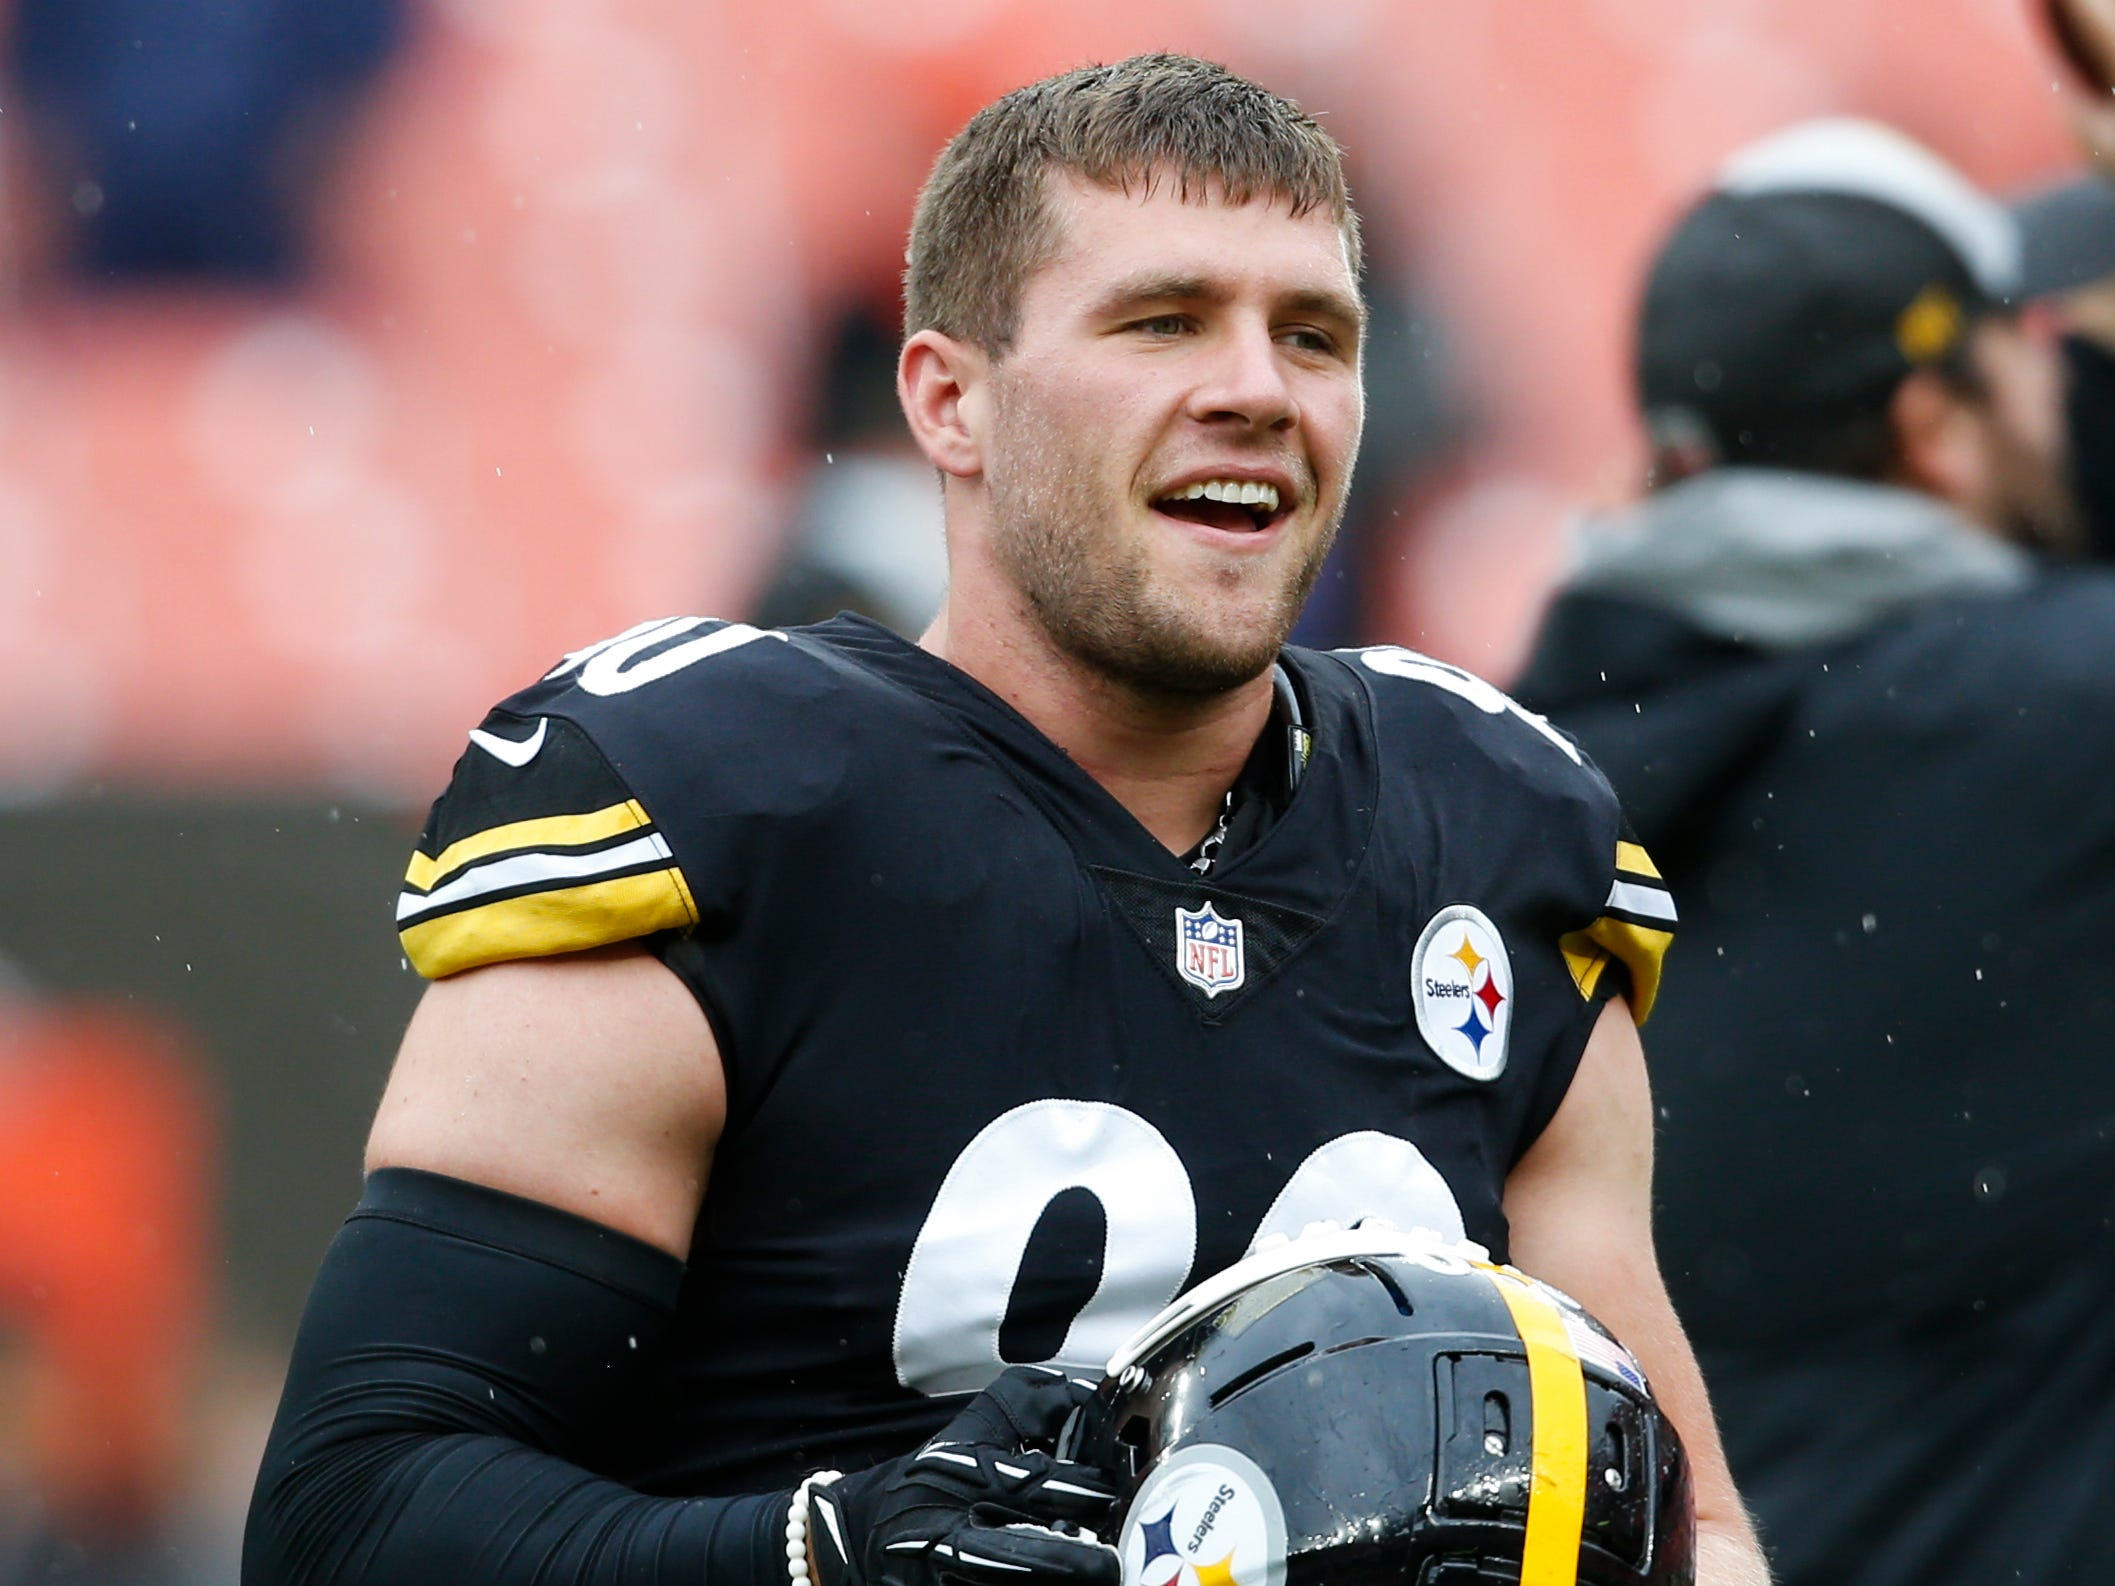 Pittsburgh Steelers linebacker T.J. Watt warms up before a Week 1 game against the Cleveland Browns on Sunday, Sept. 9, 2018. Watt had three sacks in the game.